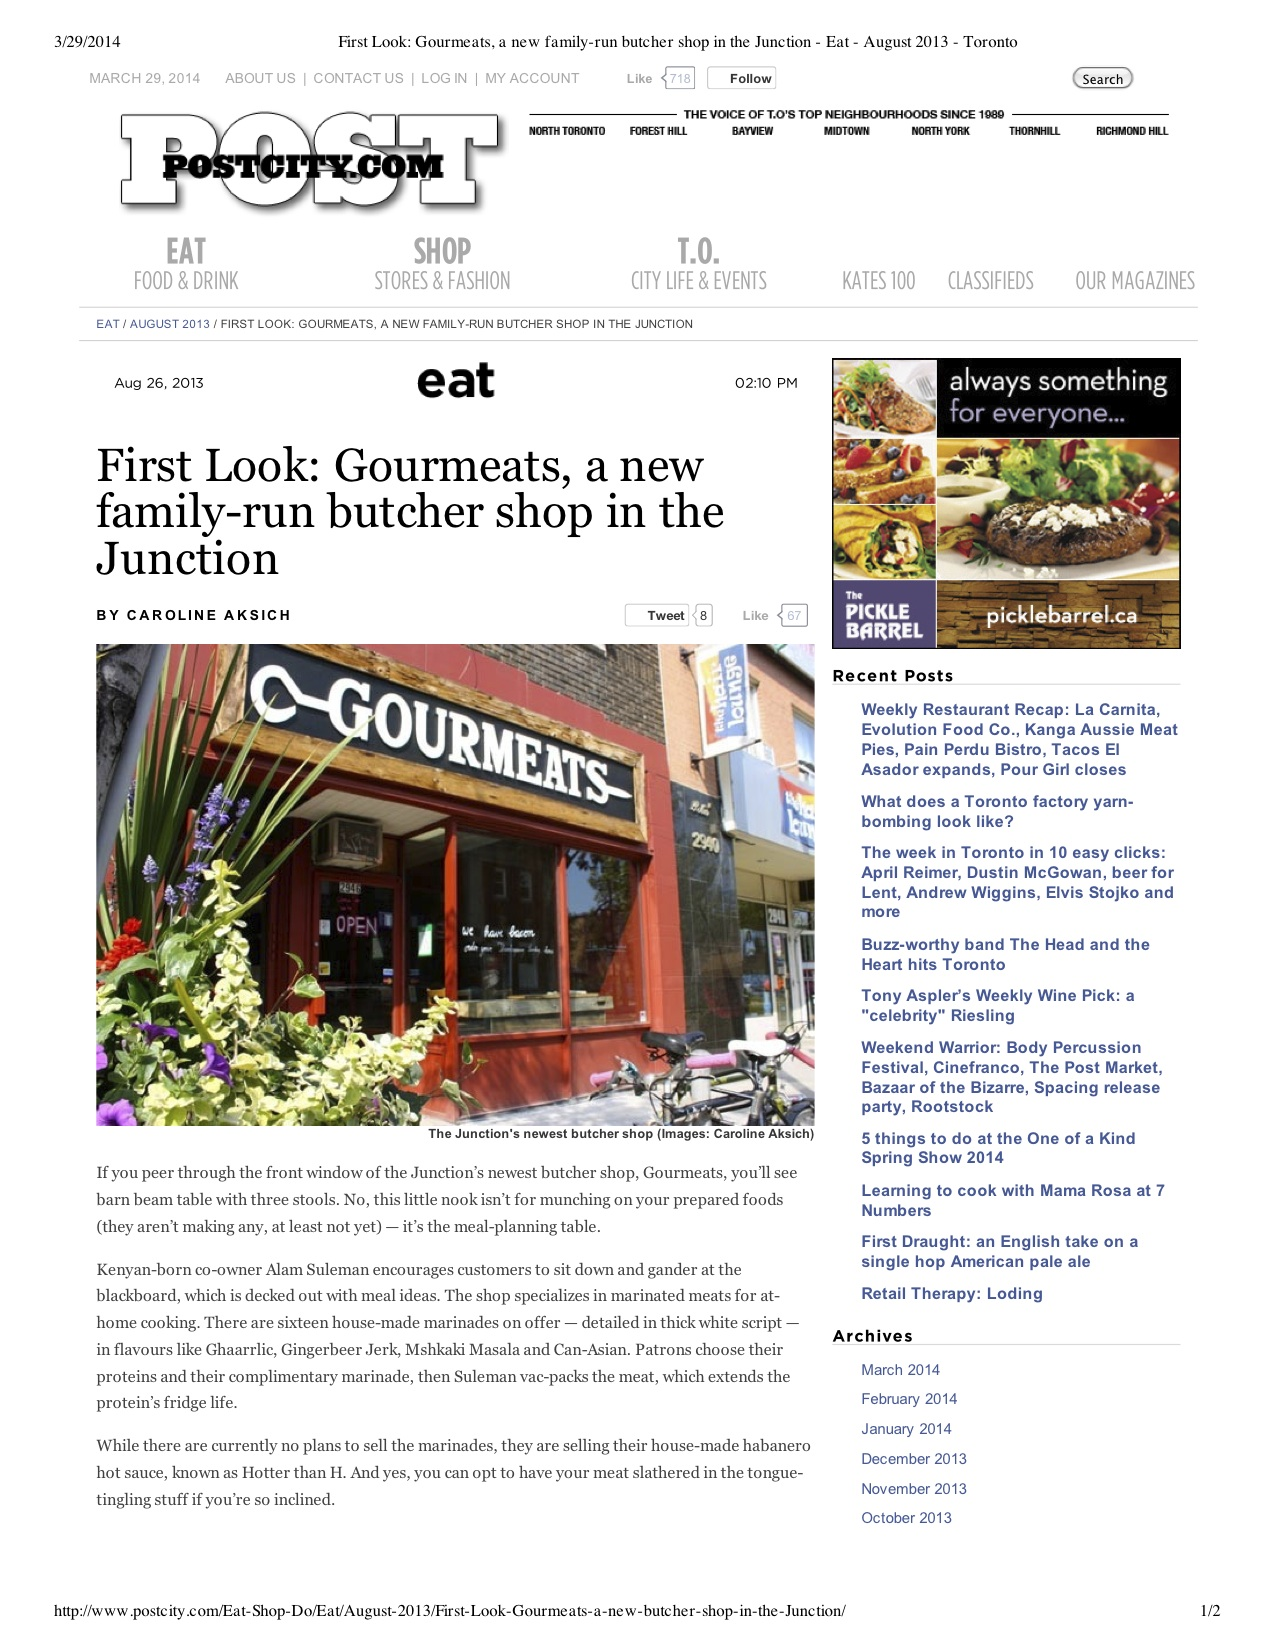 """Preview of """"First Look- Gourmeats, a...- August 2013 - Toronto"""".jpg"""